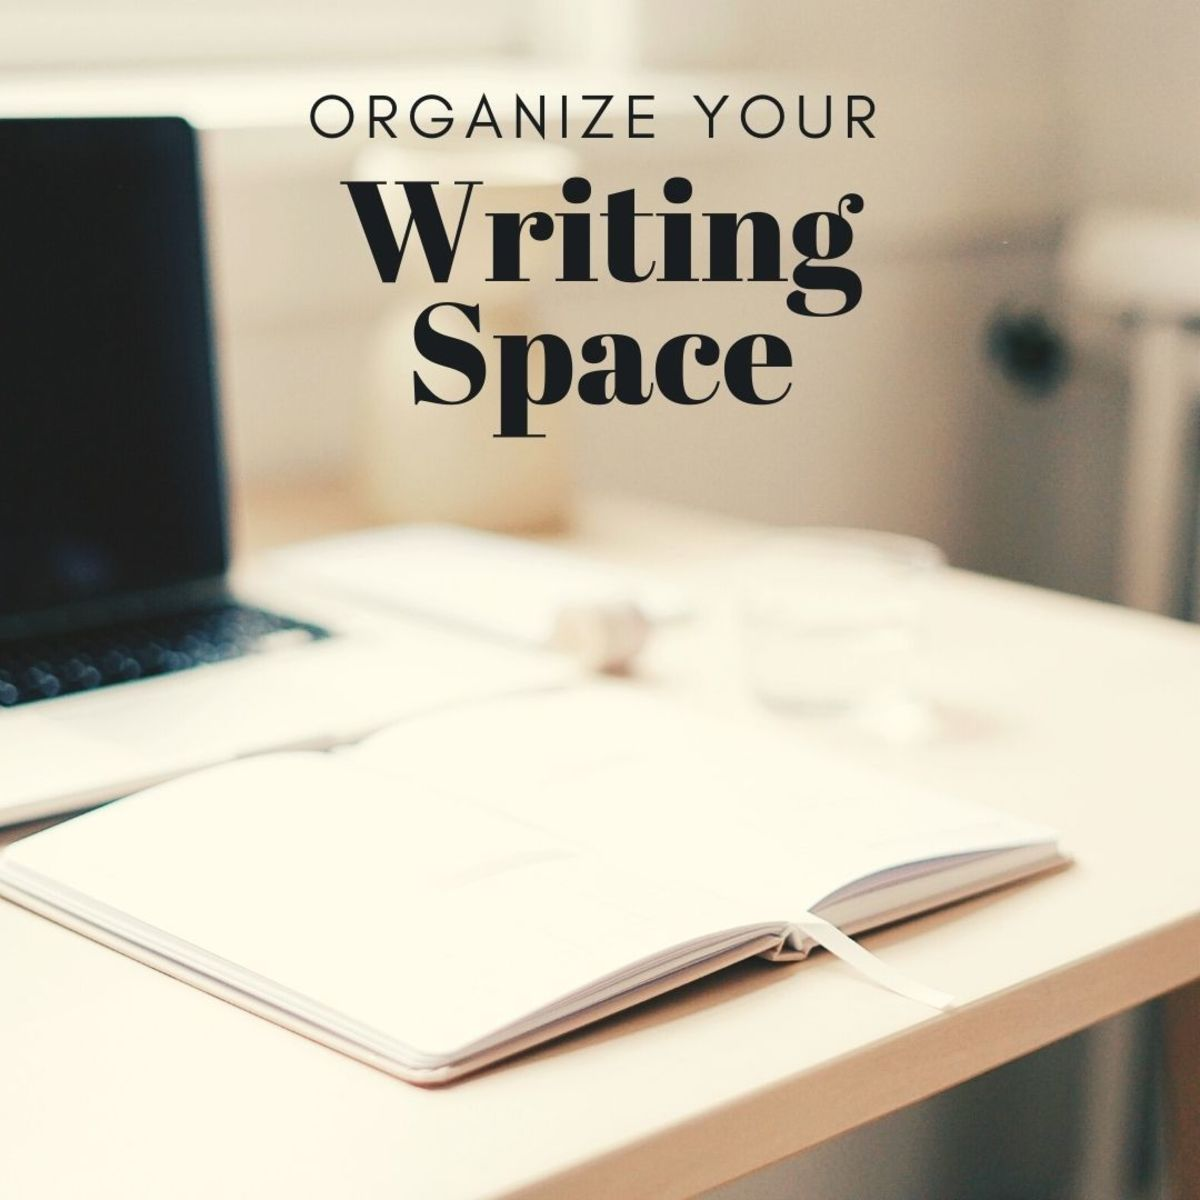 Maintaining a pleasant, organized writing space will help you accomplish your goals.